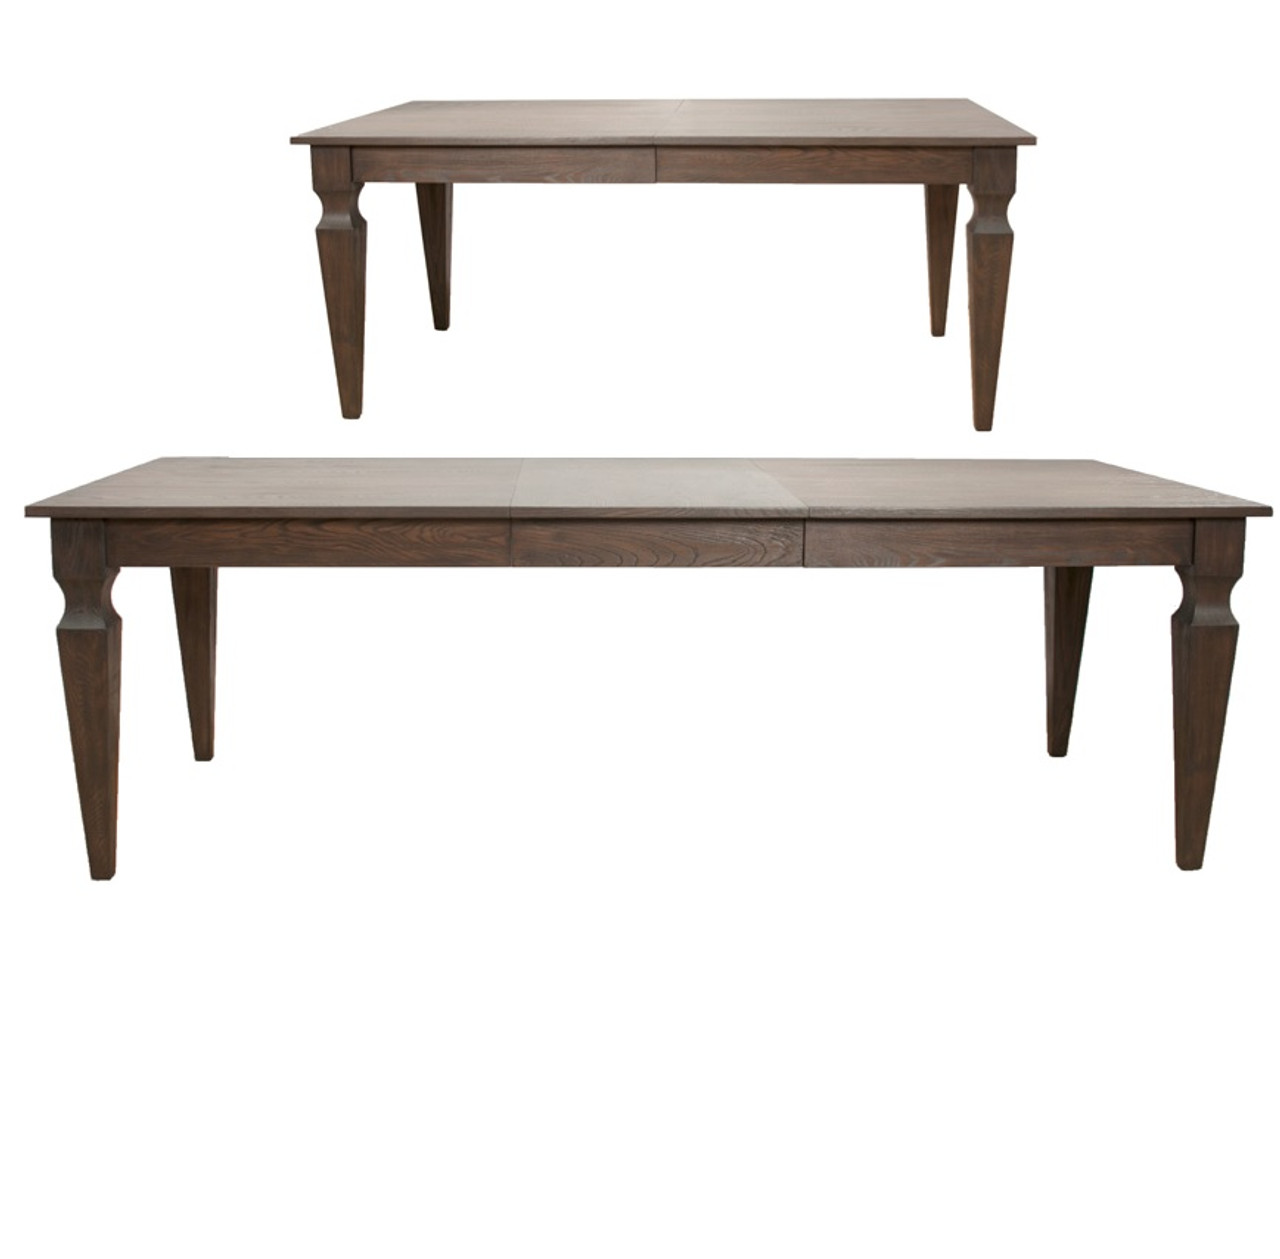 dining room table extender | Royce Extension Dining Room Table | Zin Home